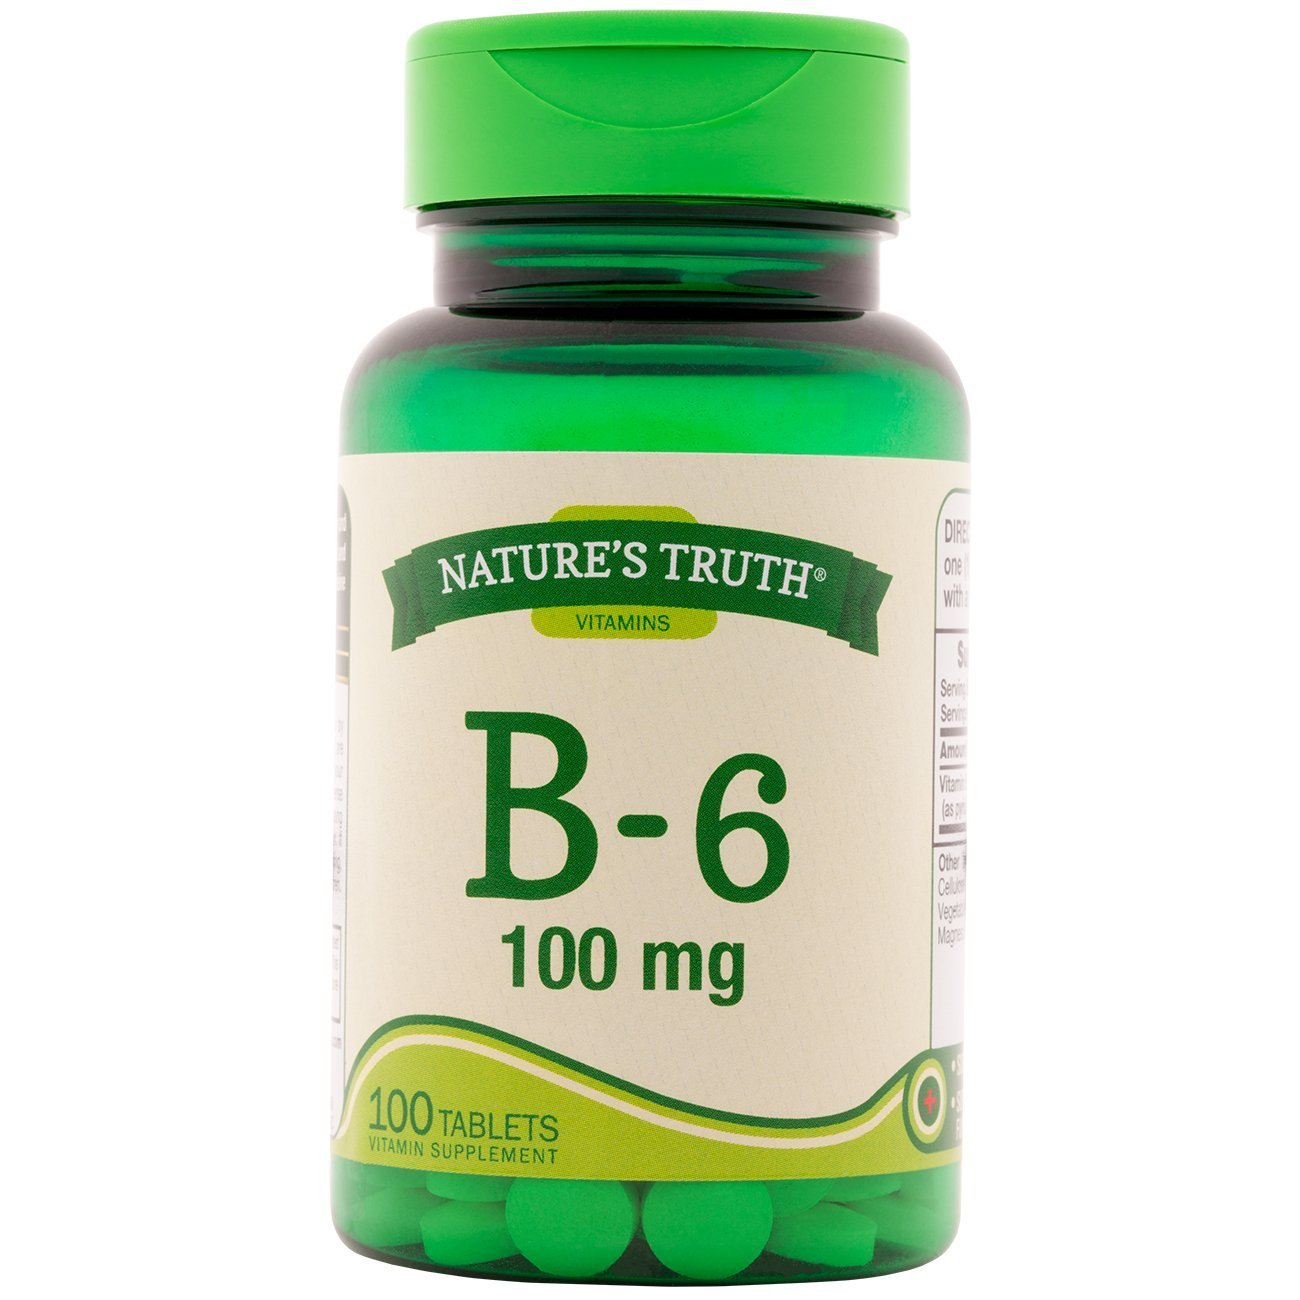 Nature's Truth B-6 100 mg - 100 Tablets, Pack of 6